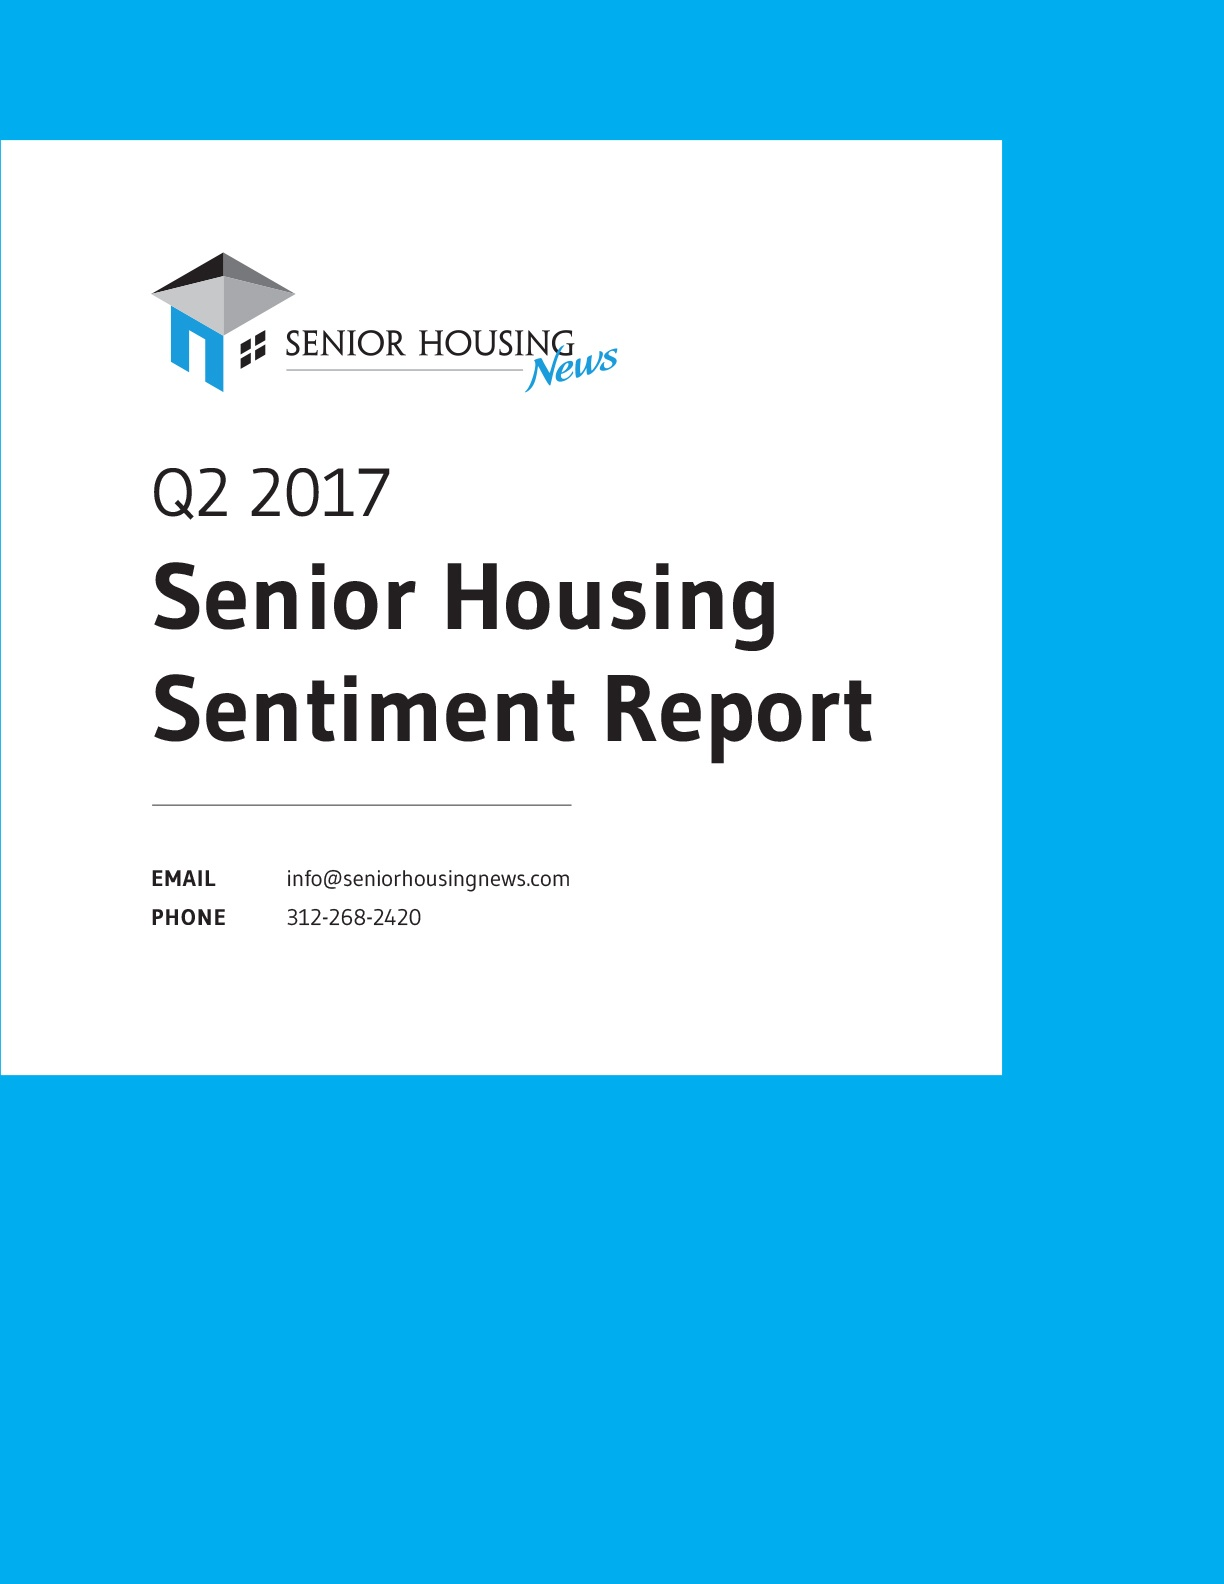 Q2 2017 Sentiment Survey Report